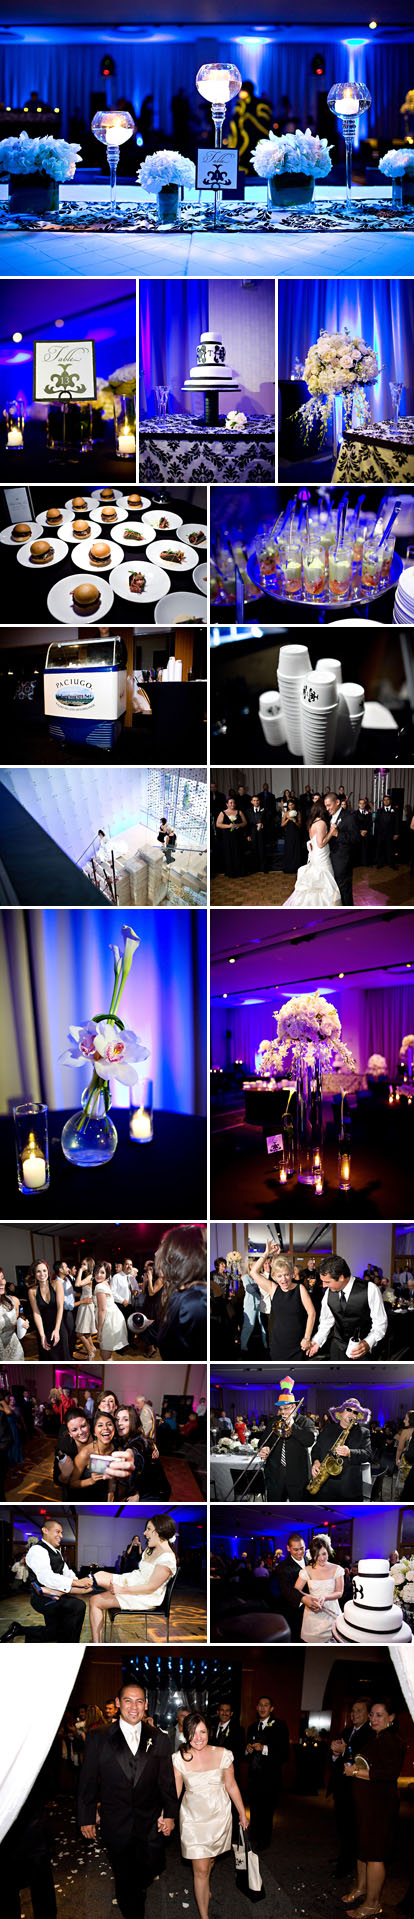 Perez Photogrpahy, W Hotel Dallas, Texas wedding, black and white wedding color palette